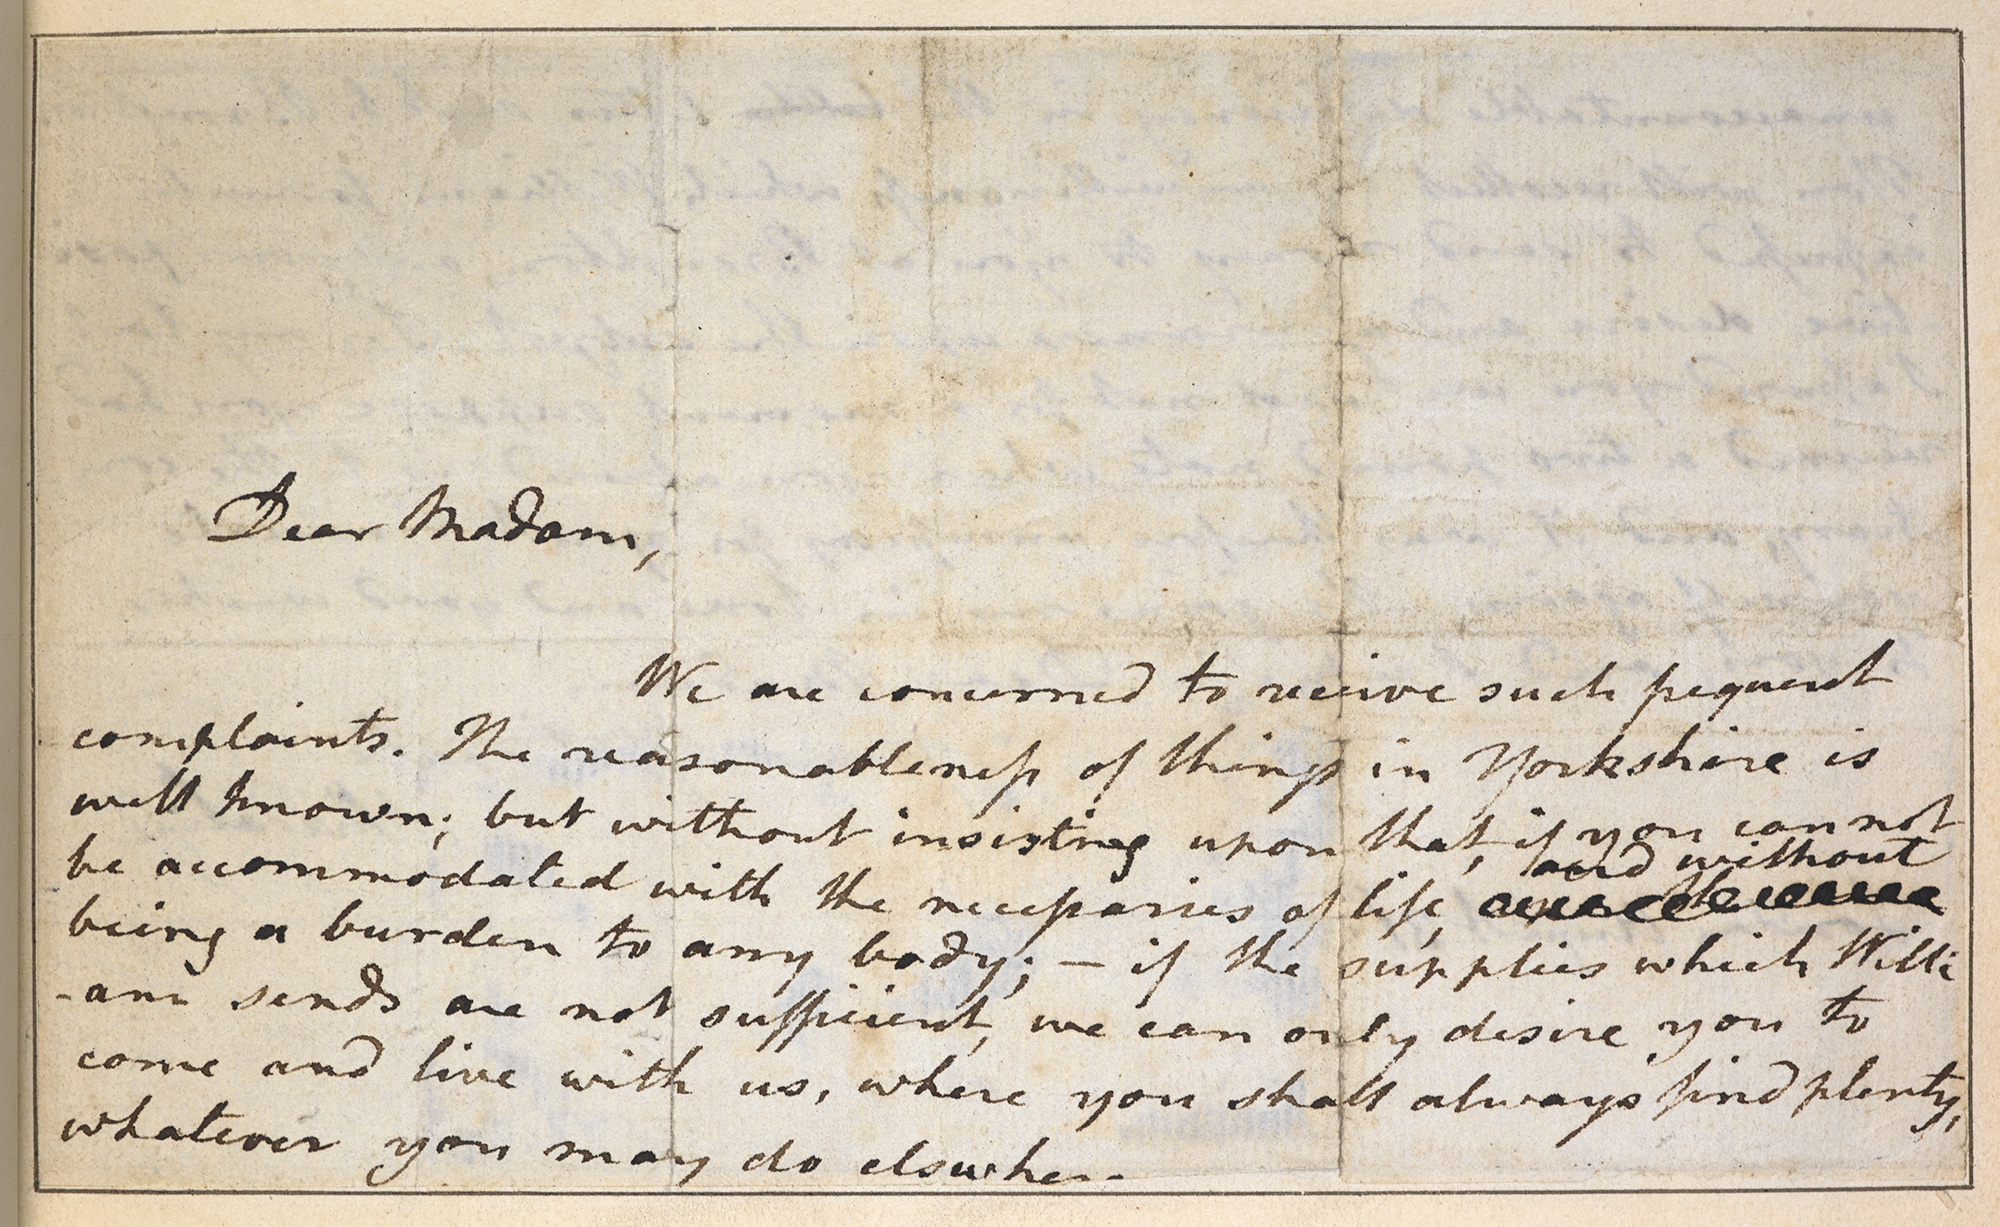 Letter from Ann Radcliffe to her mother-in-law